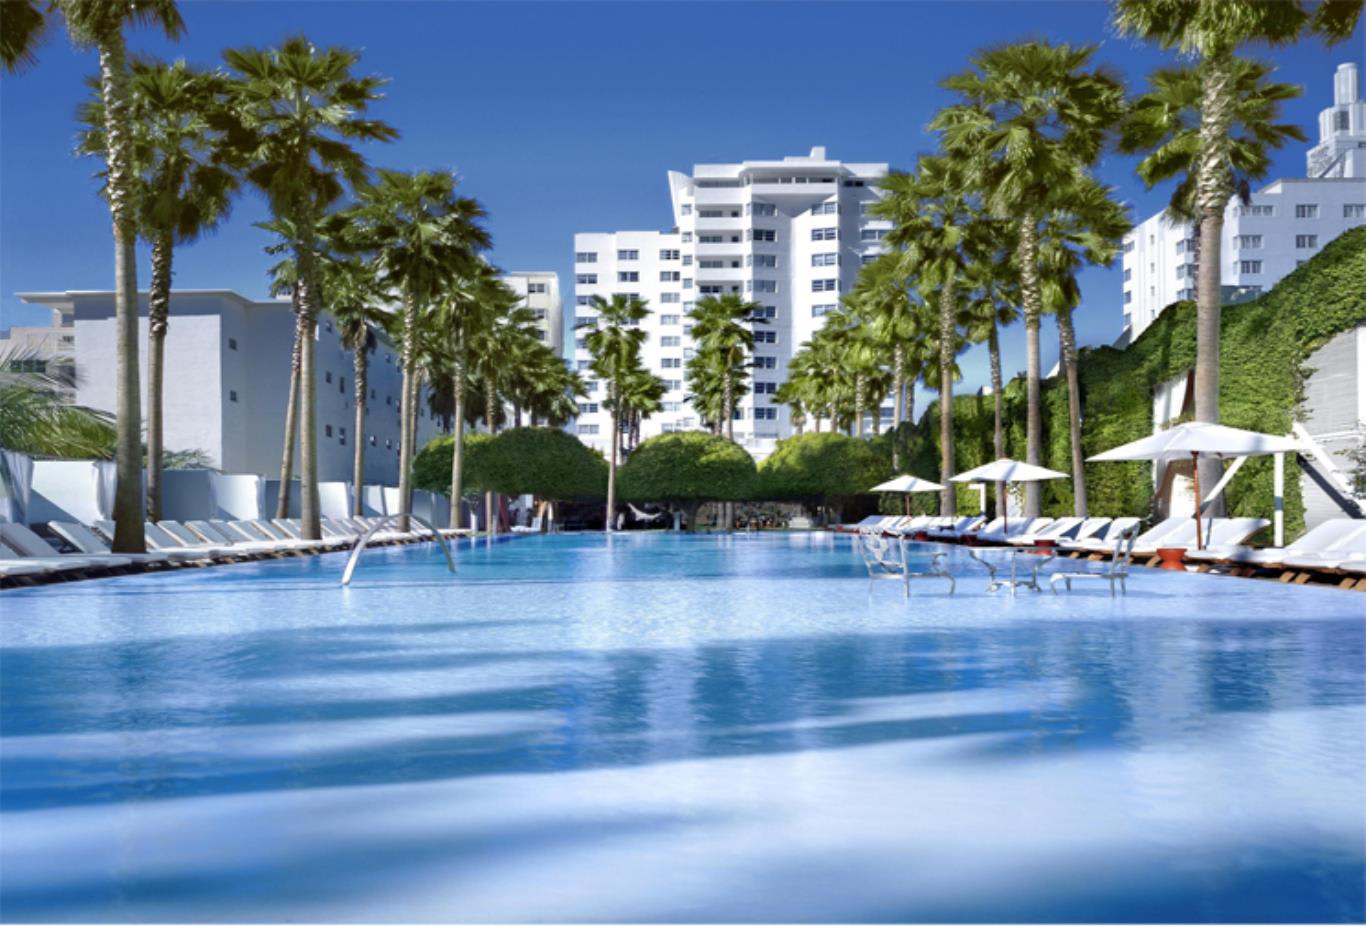 Delano Hotel and Pool